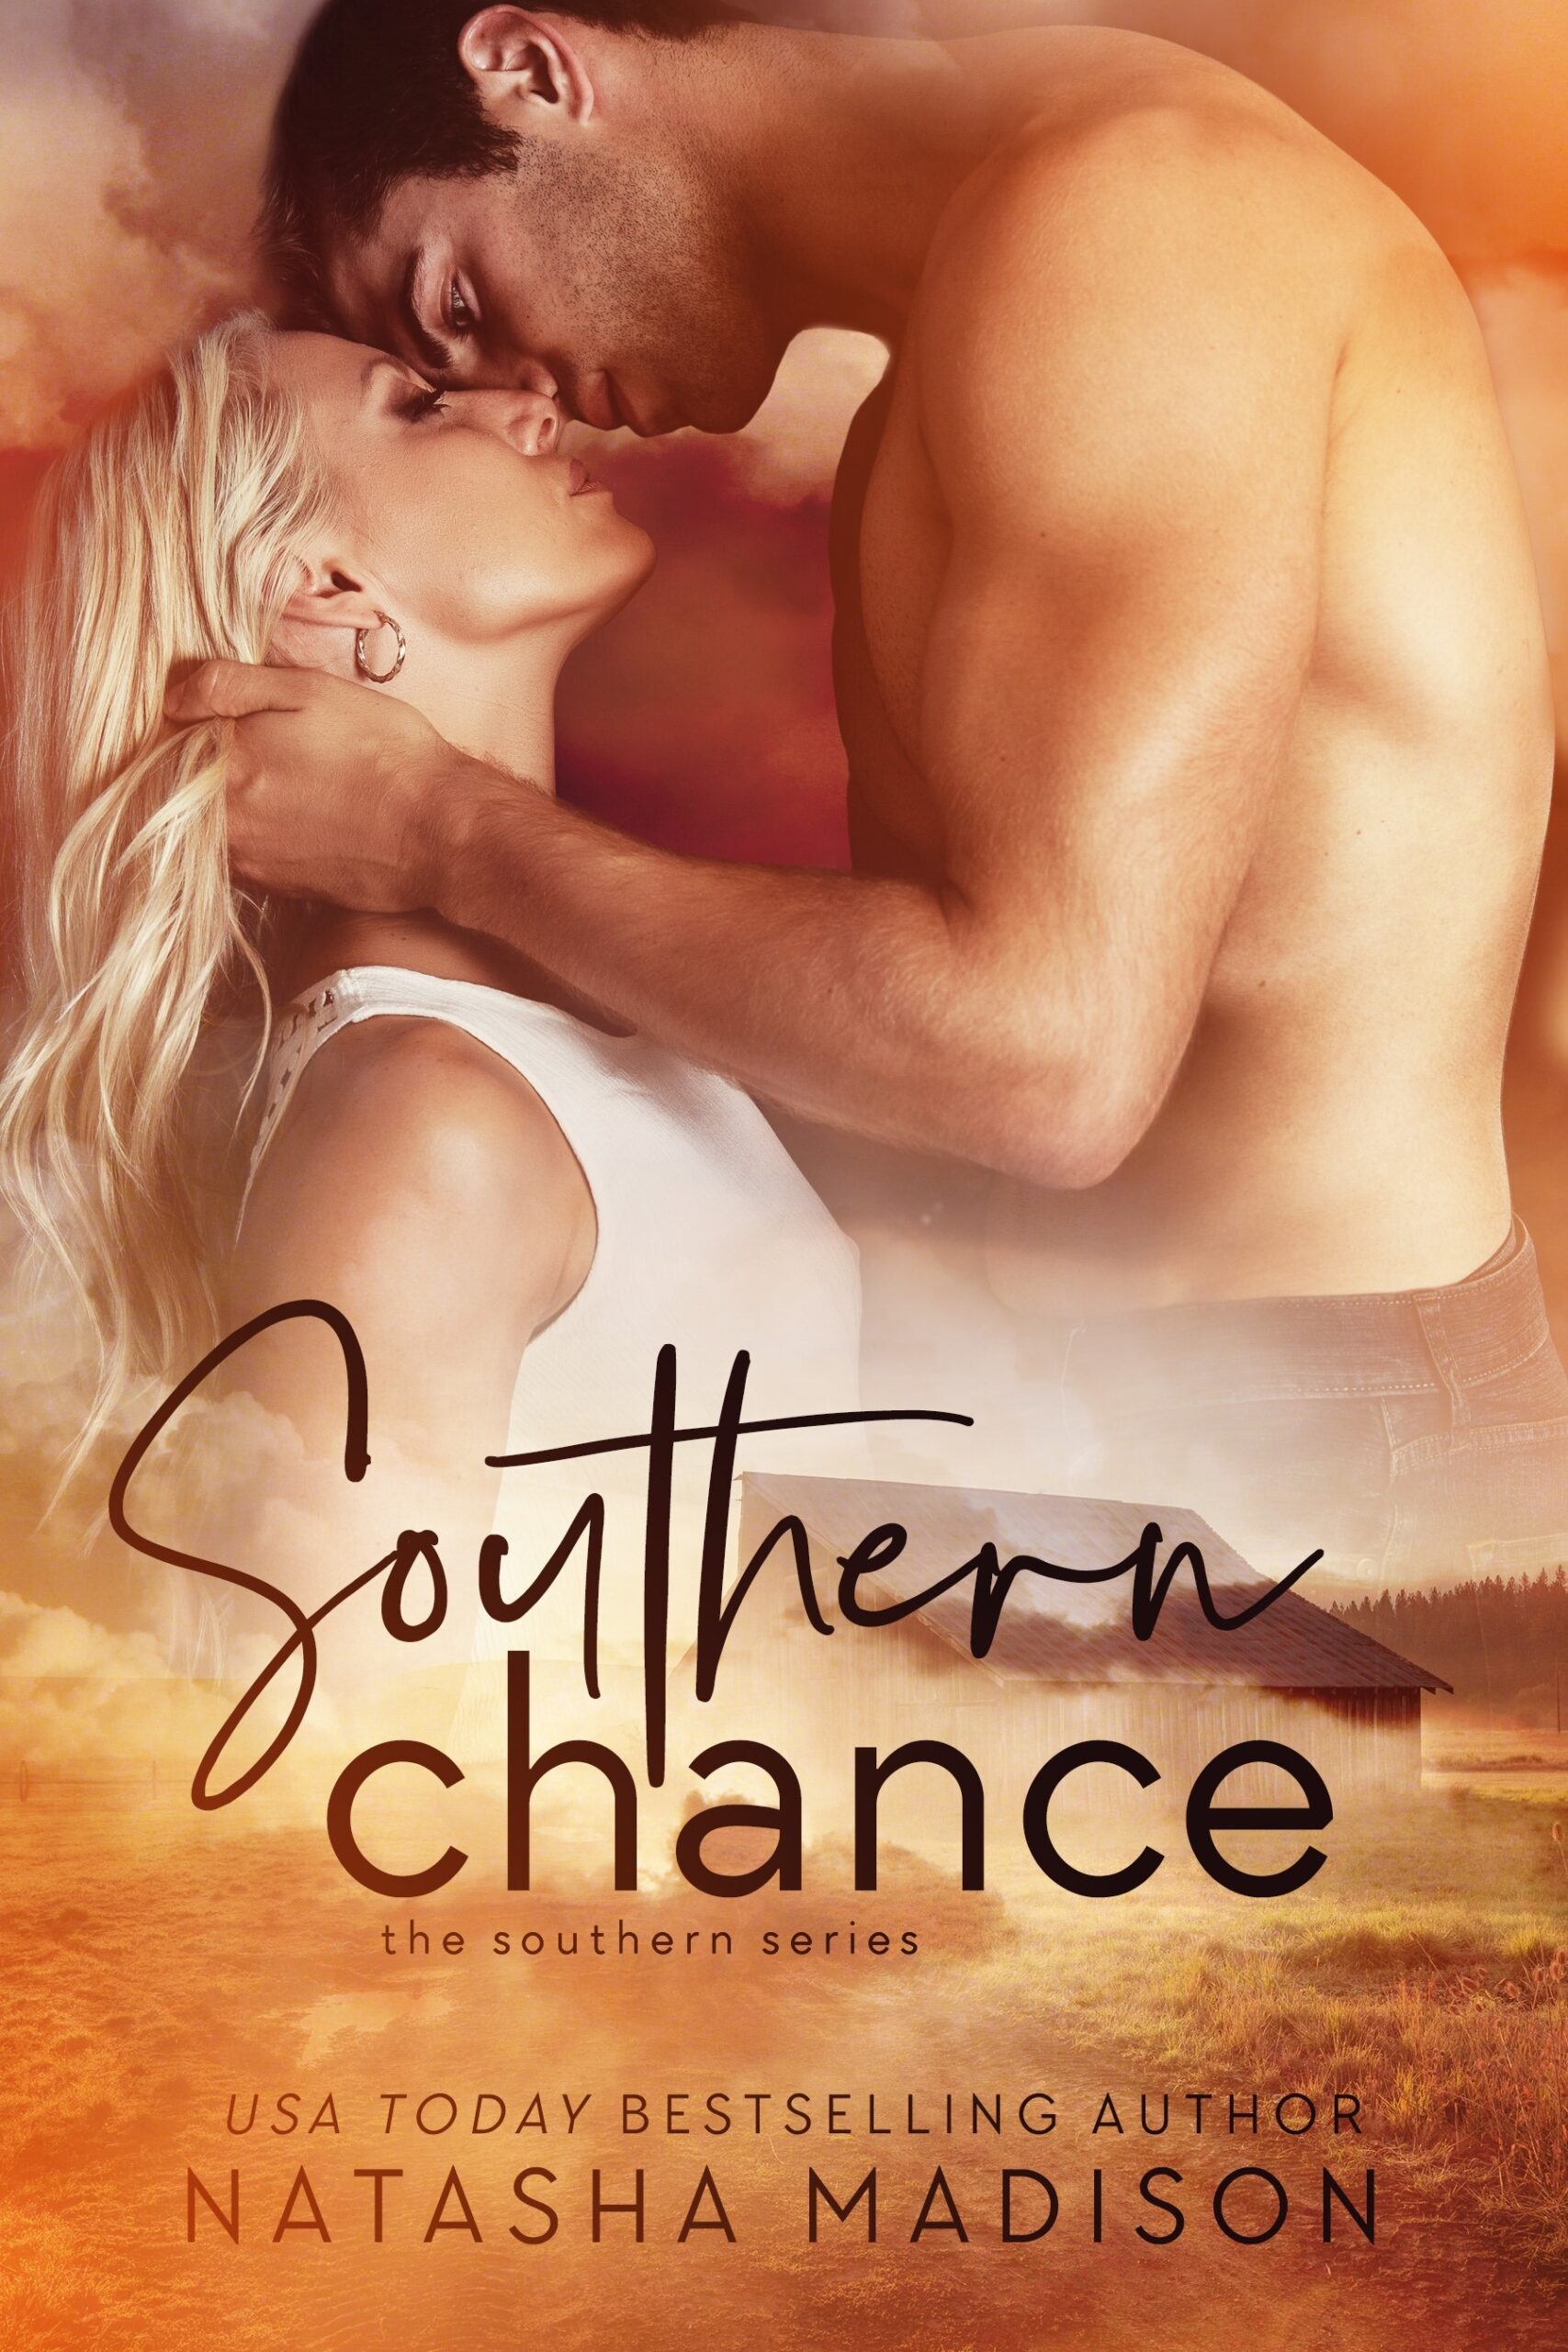 Southern Chance by Natasha Madison